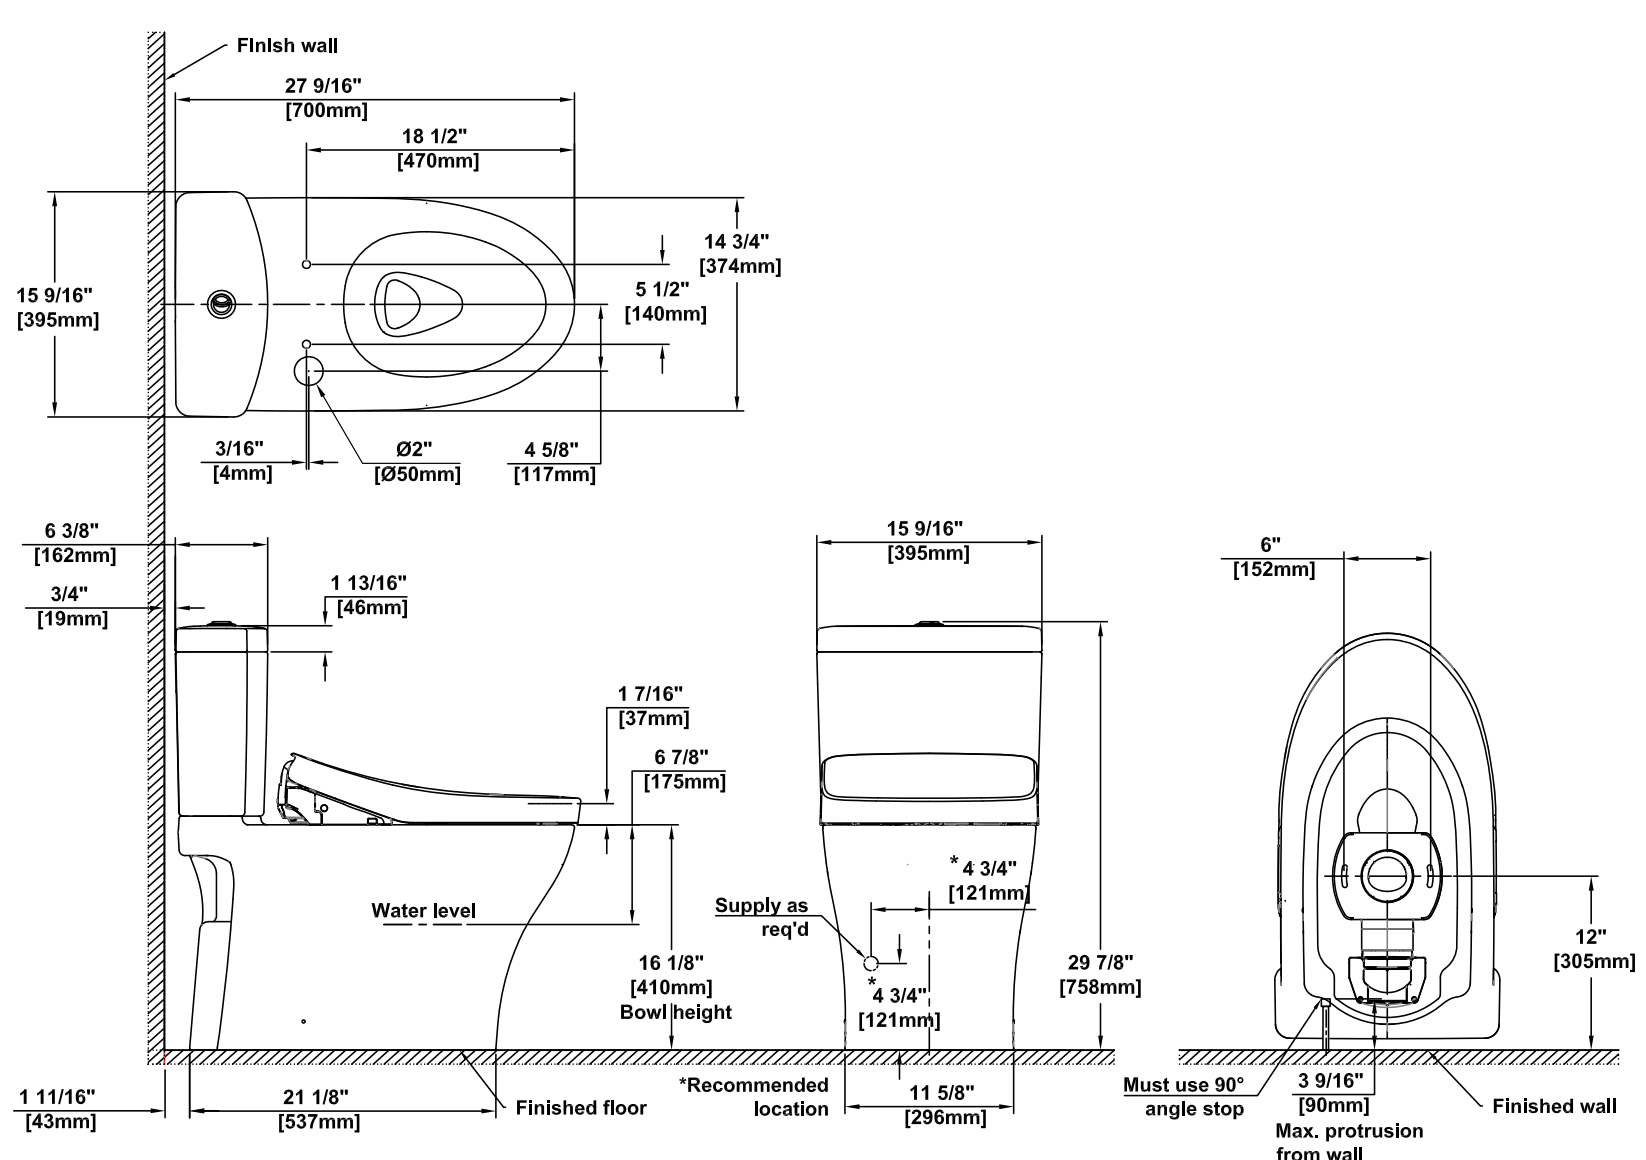 aquia-iv-washlet-s500e-two-piece-toilet-1.28-gpf-0.8-gpf-universal-height-diagram.png